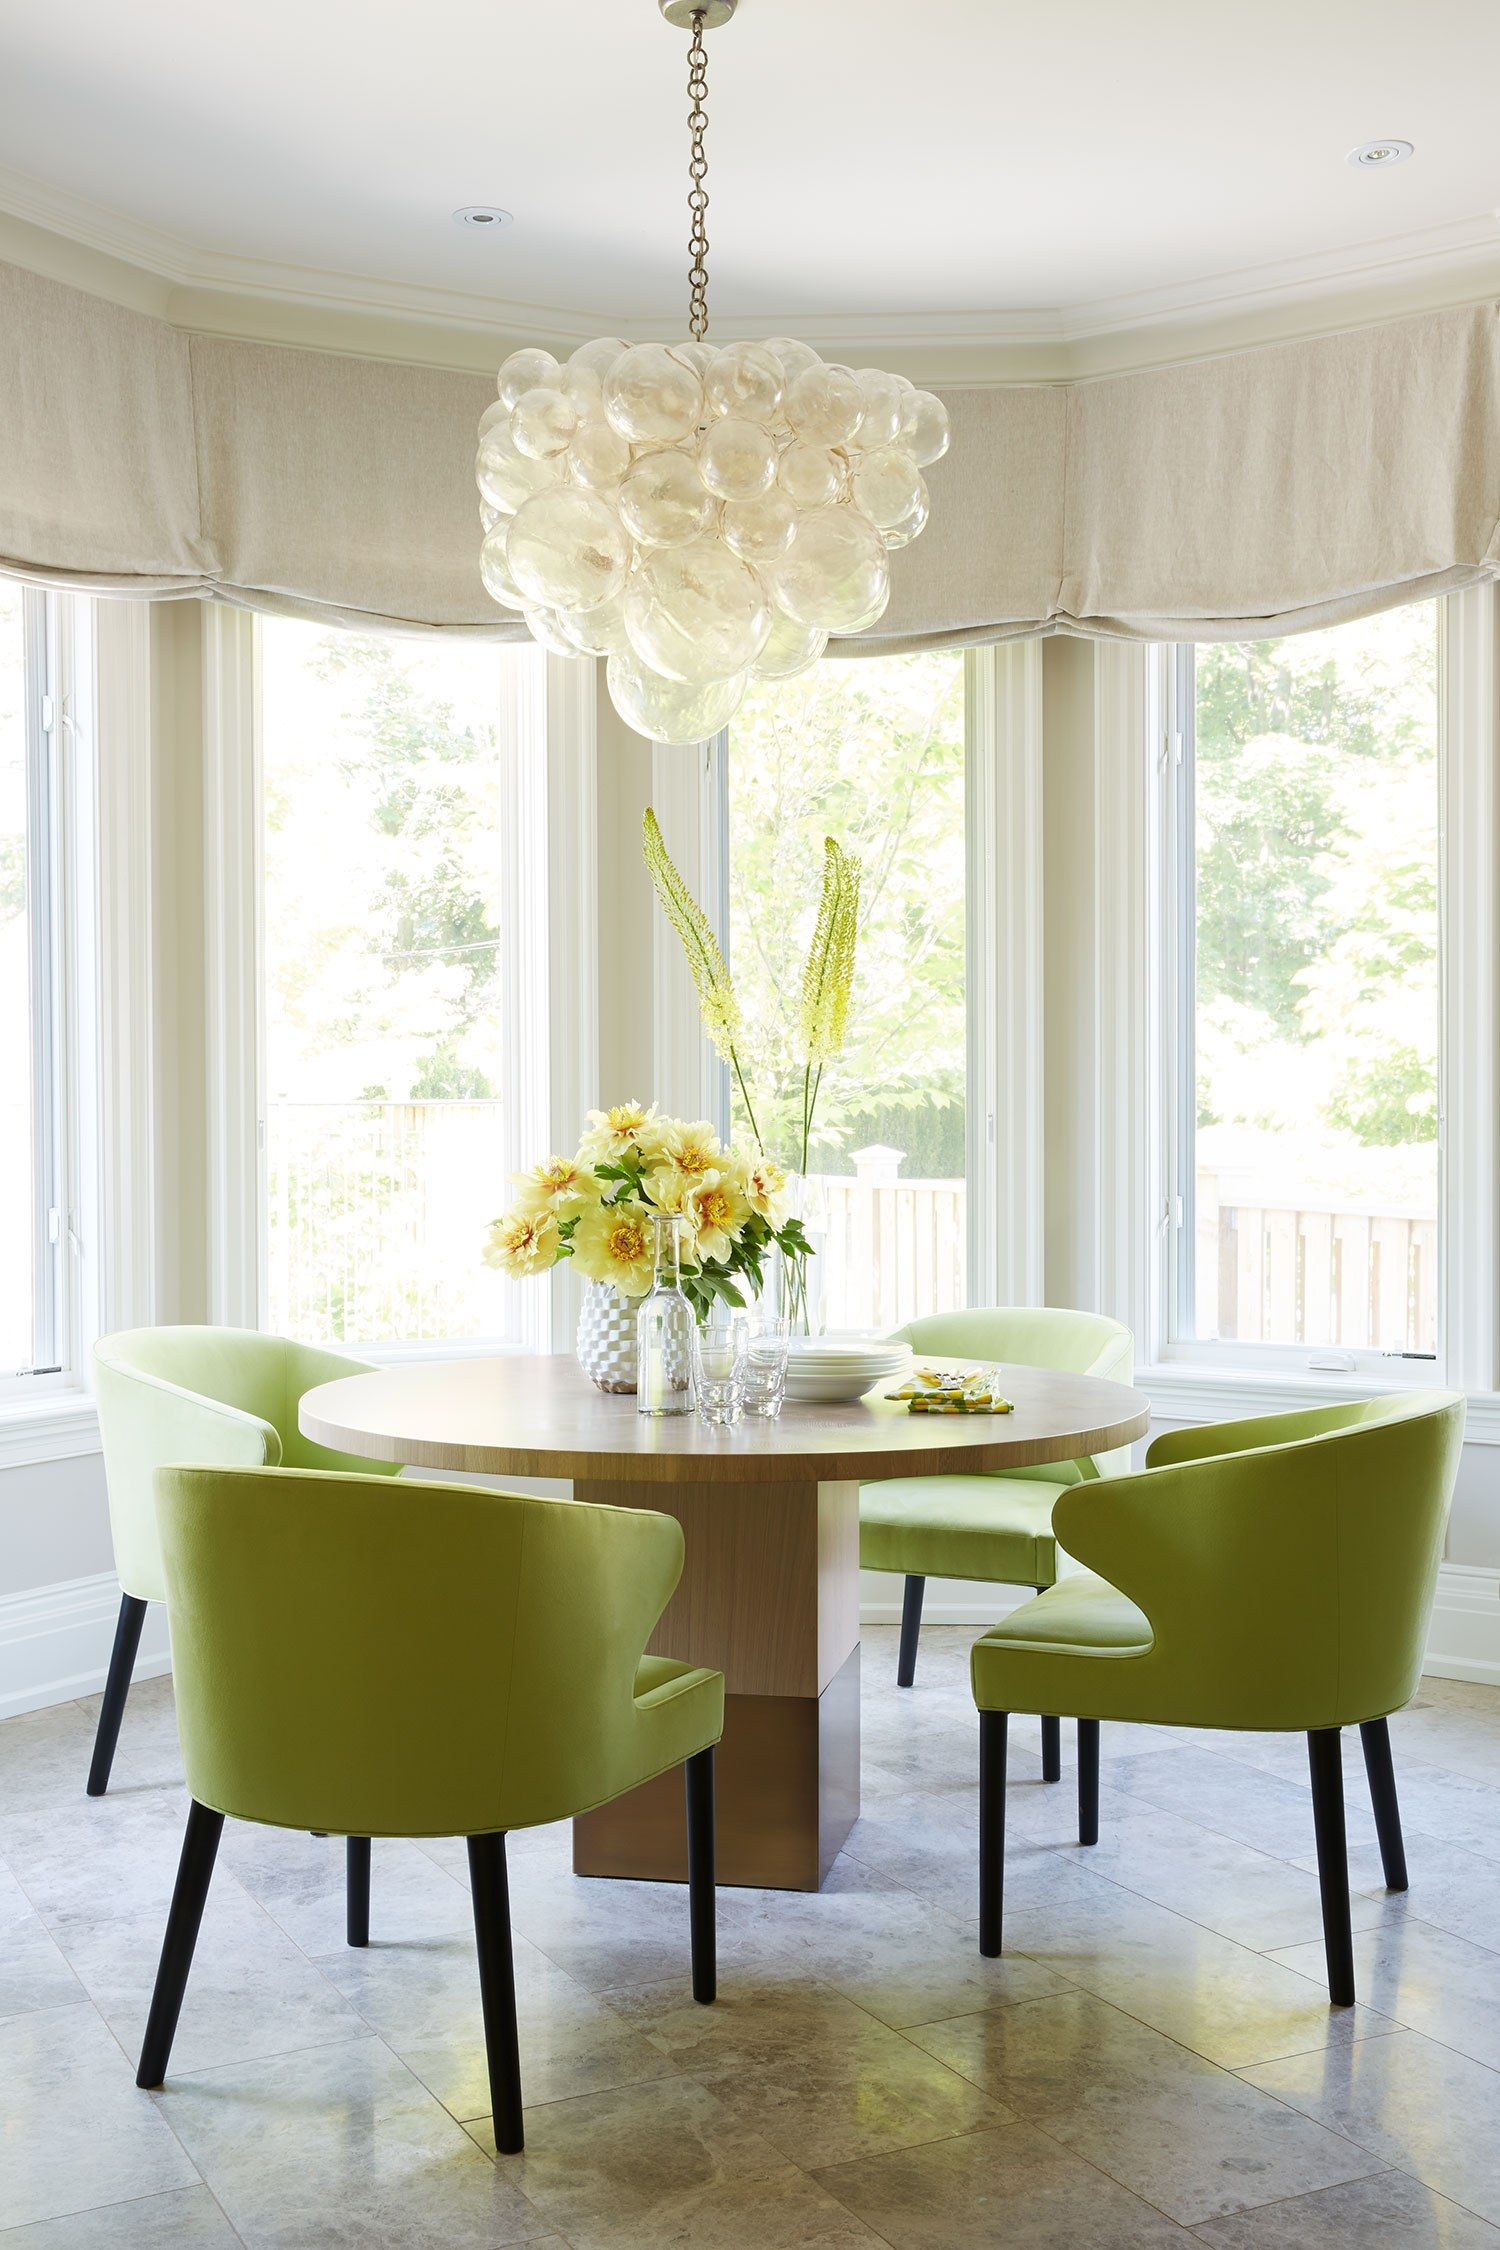 In the airy breakfast nook of a Toronto home designed by Anne Hepfer, a whimsical Oly Studio pendant light hangs above a Van Rossum dining table. Hepfer chose apple-green chairs to help brighten the space and bring the outdoors in. | archdigest.com